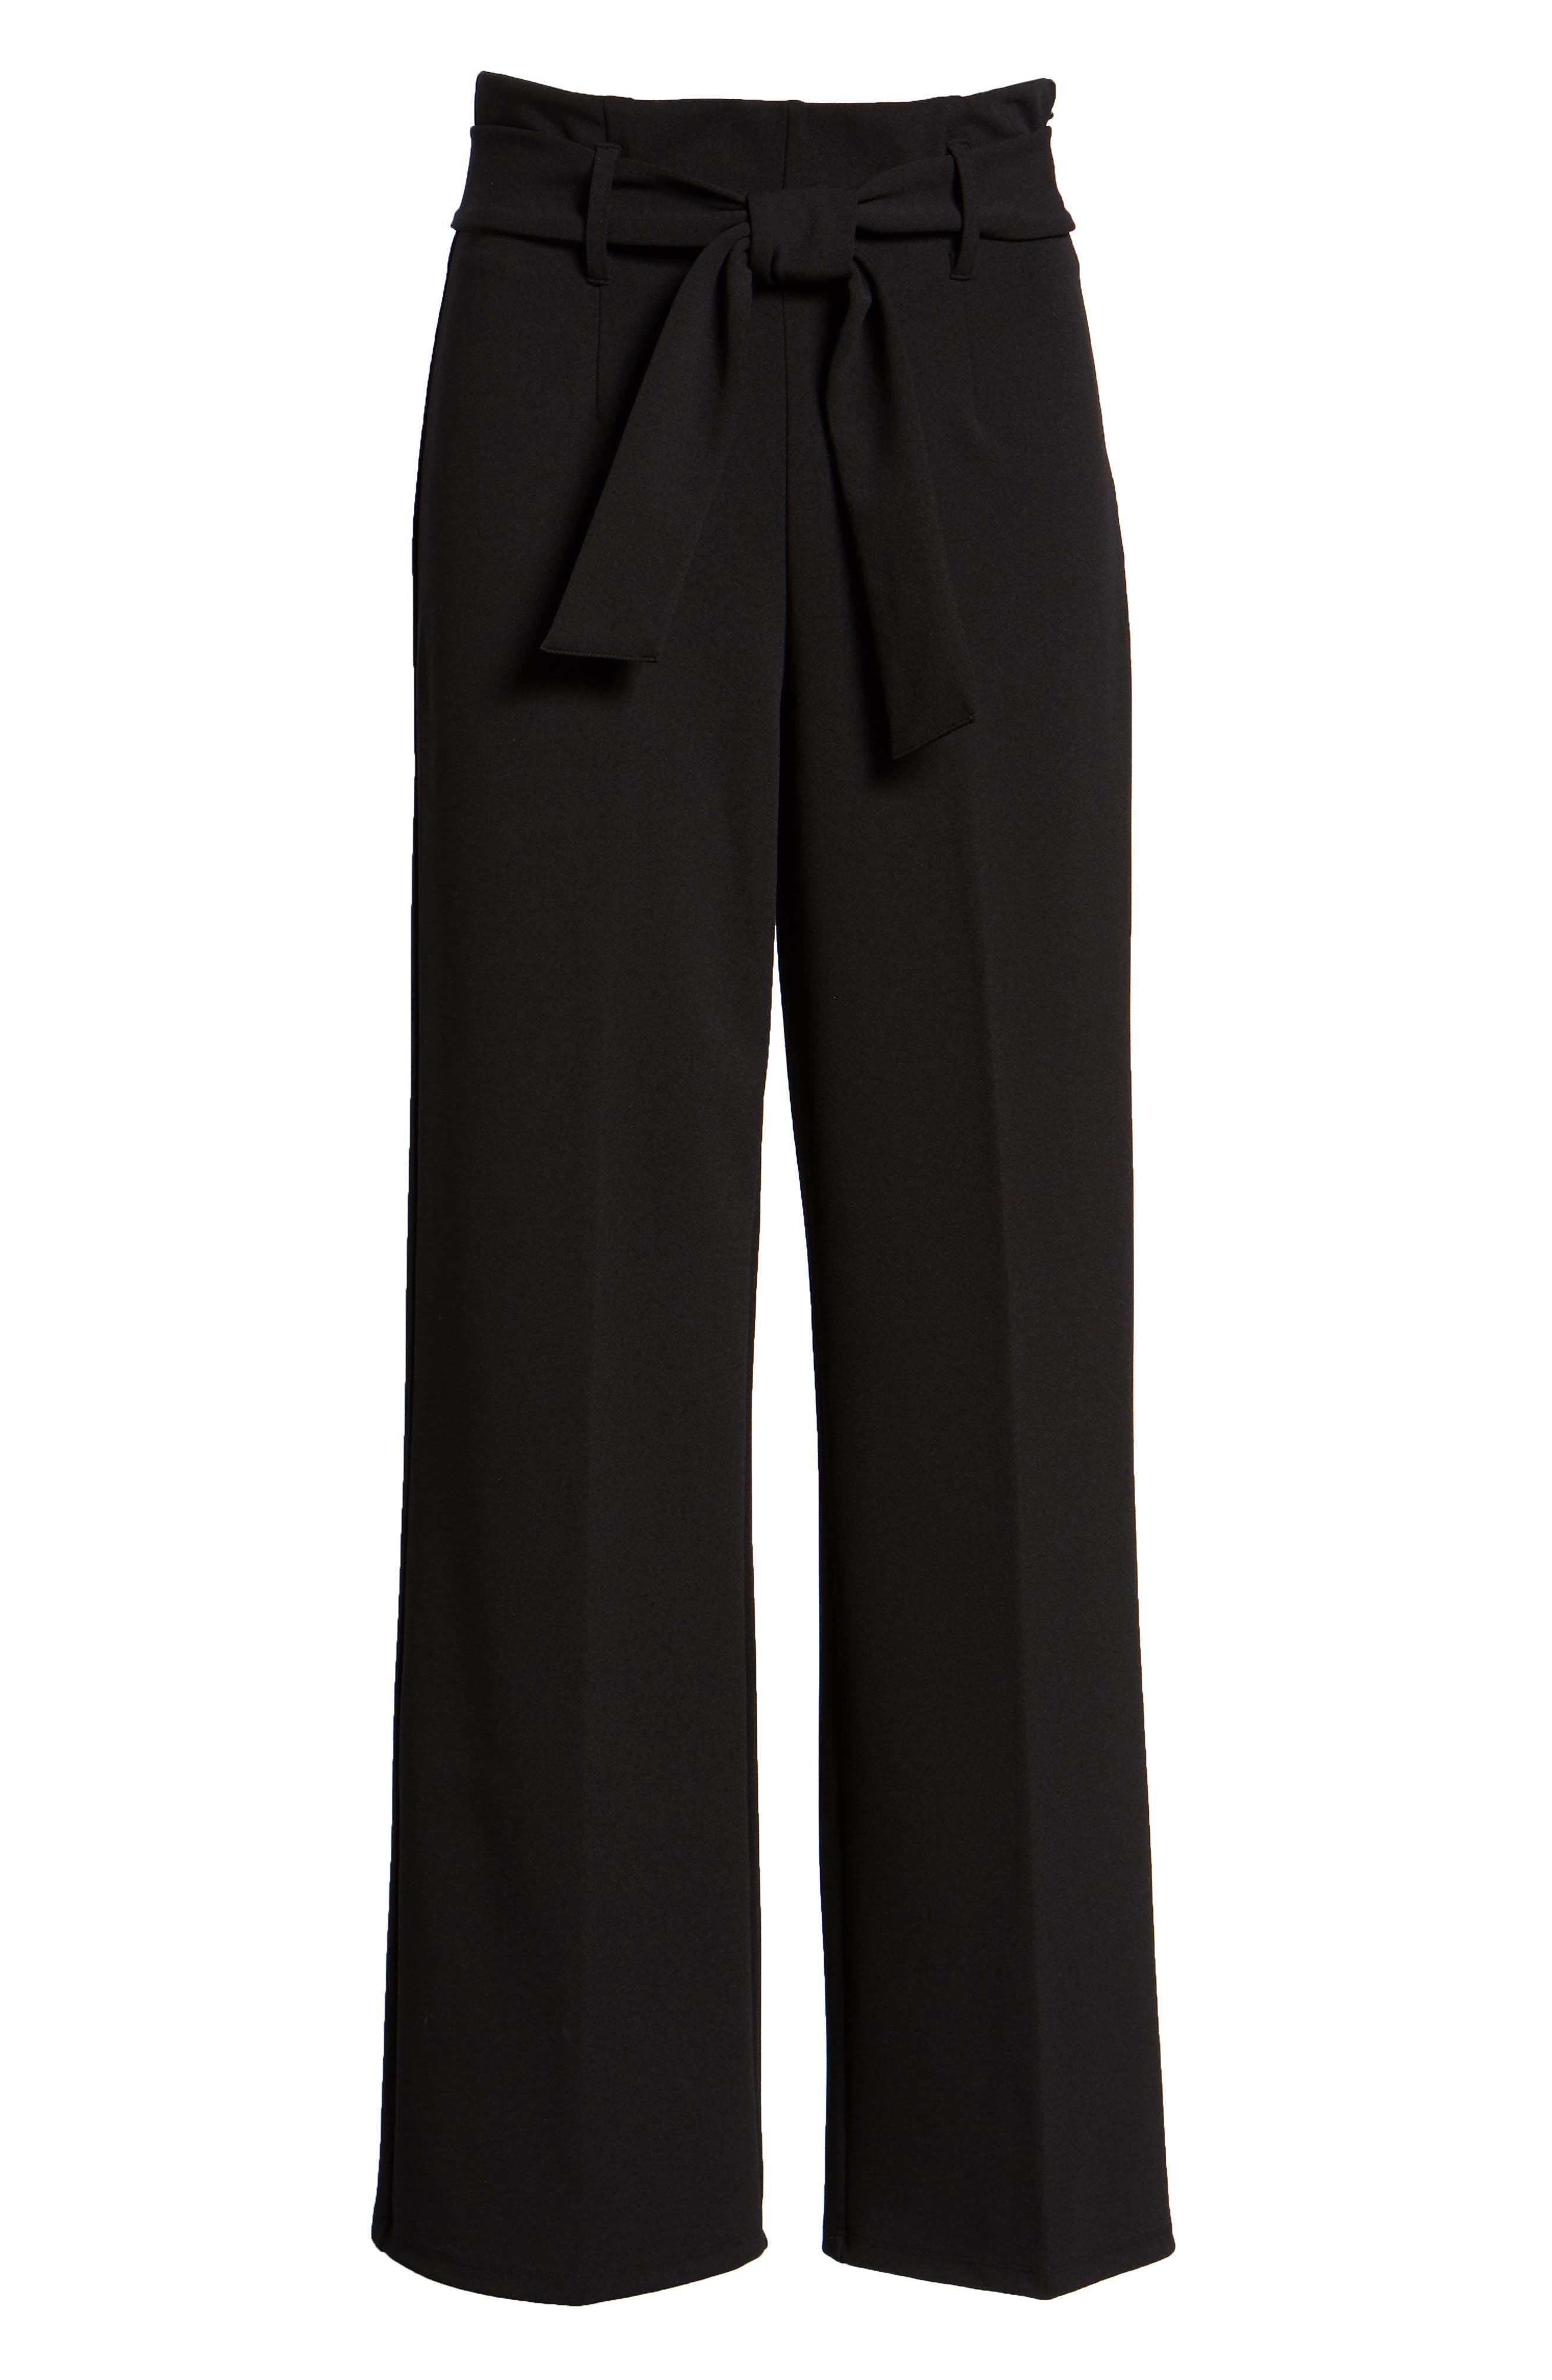 LEITH, High Waist Belted Pants, Alternate thumbnail 7, color, 001